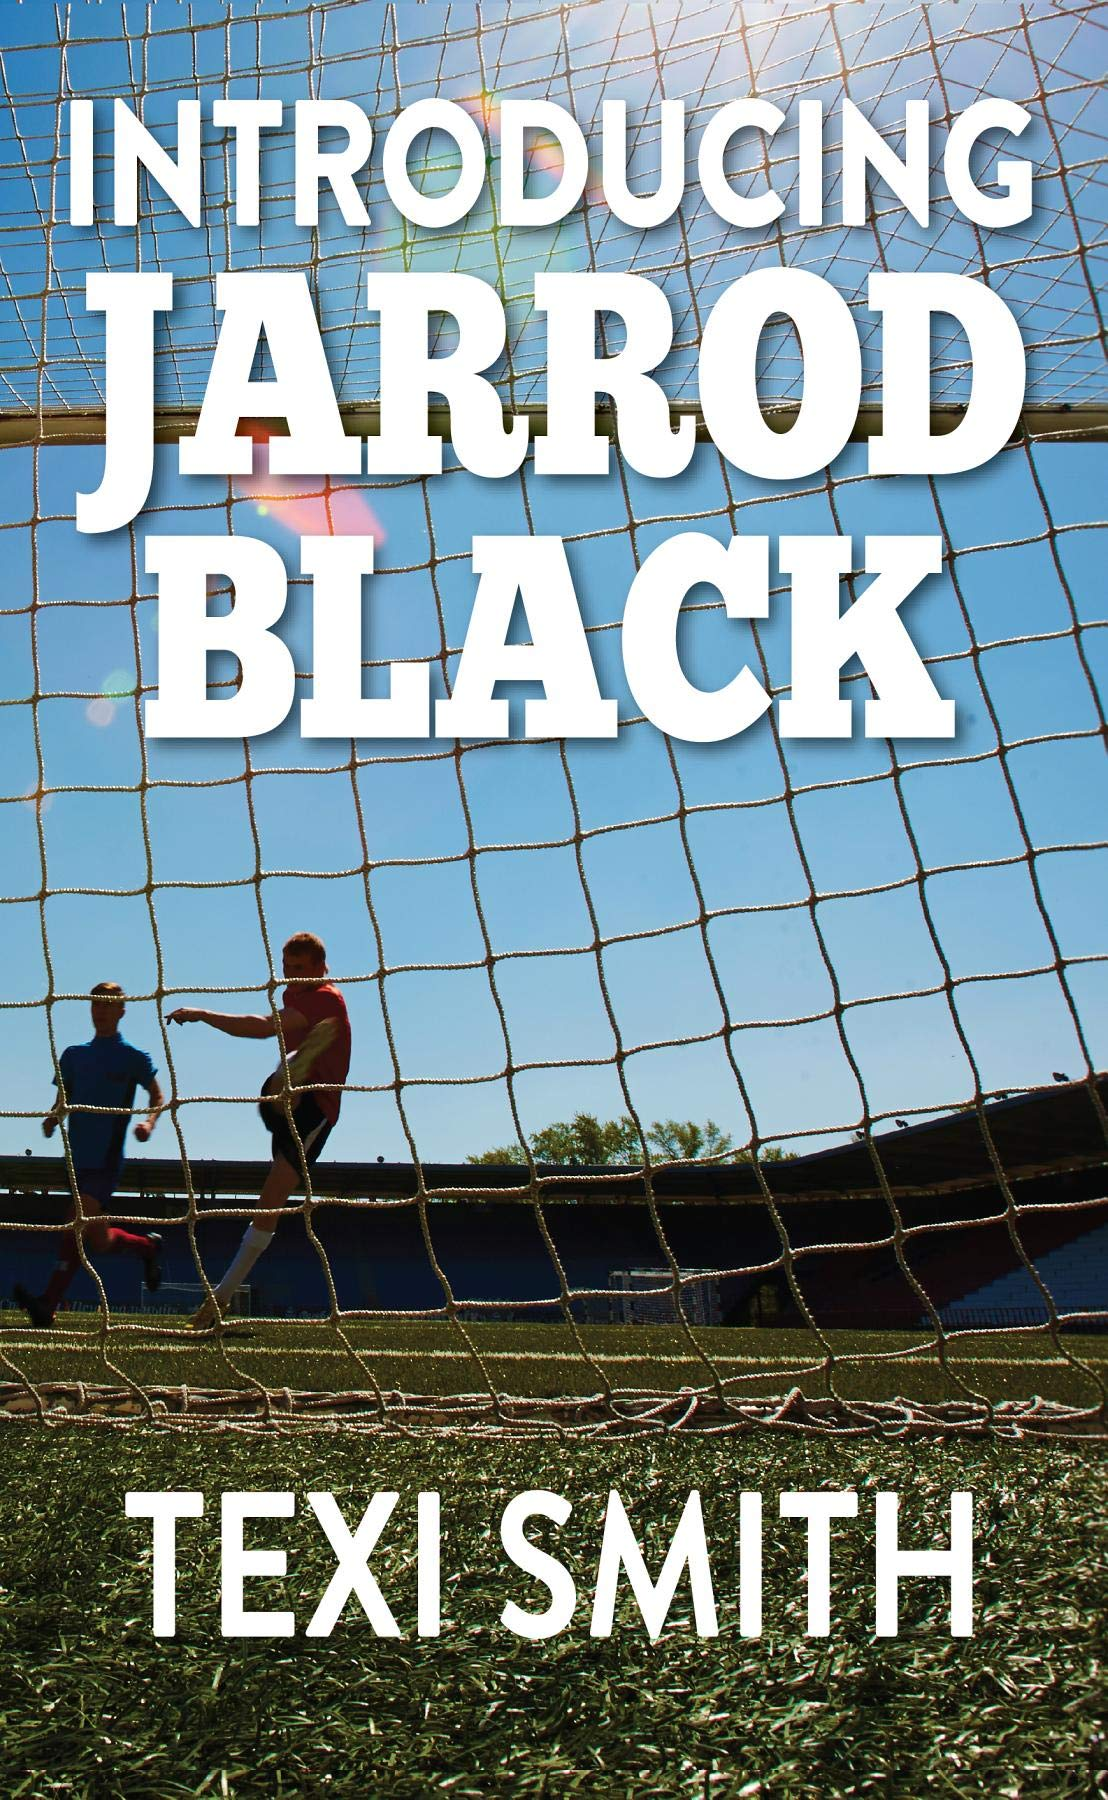 Image OfIntroducing Jarrod Black: An Unashamed Football Novel (English Edition)